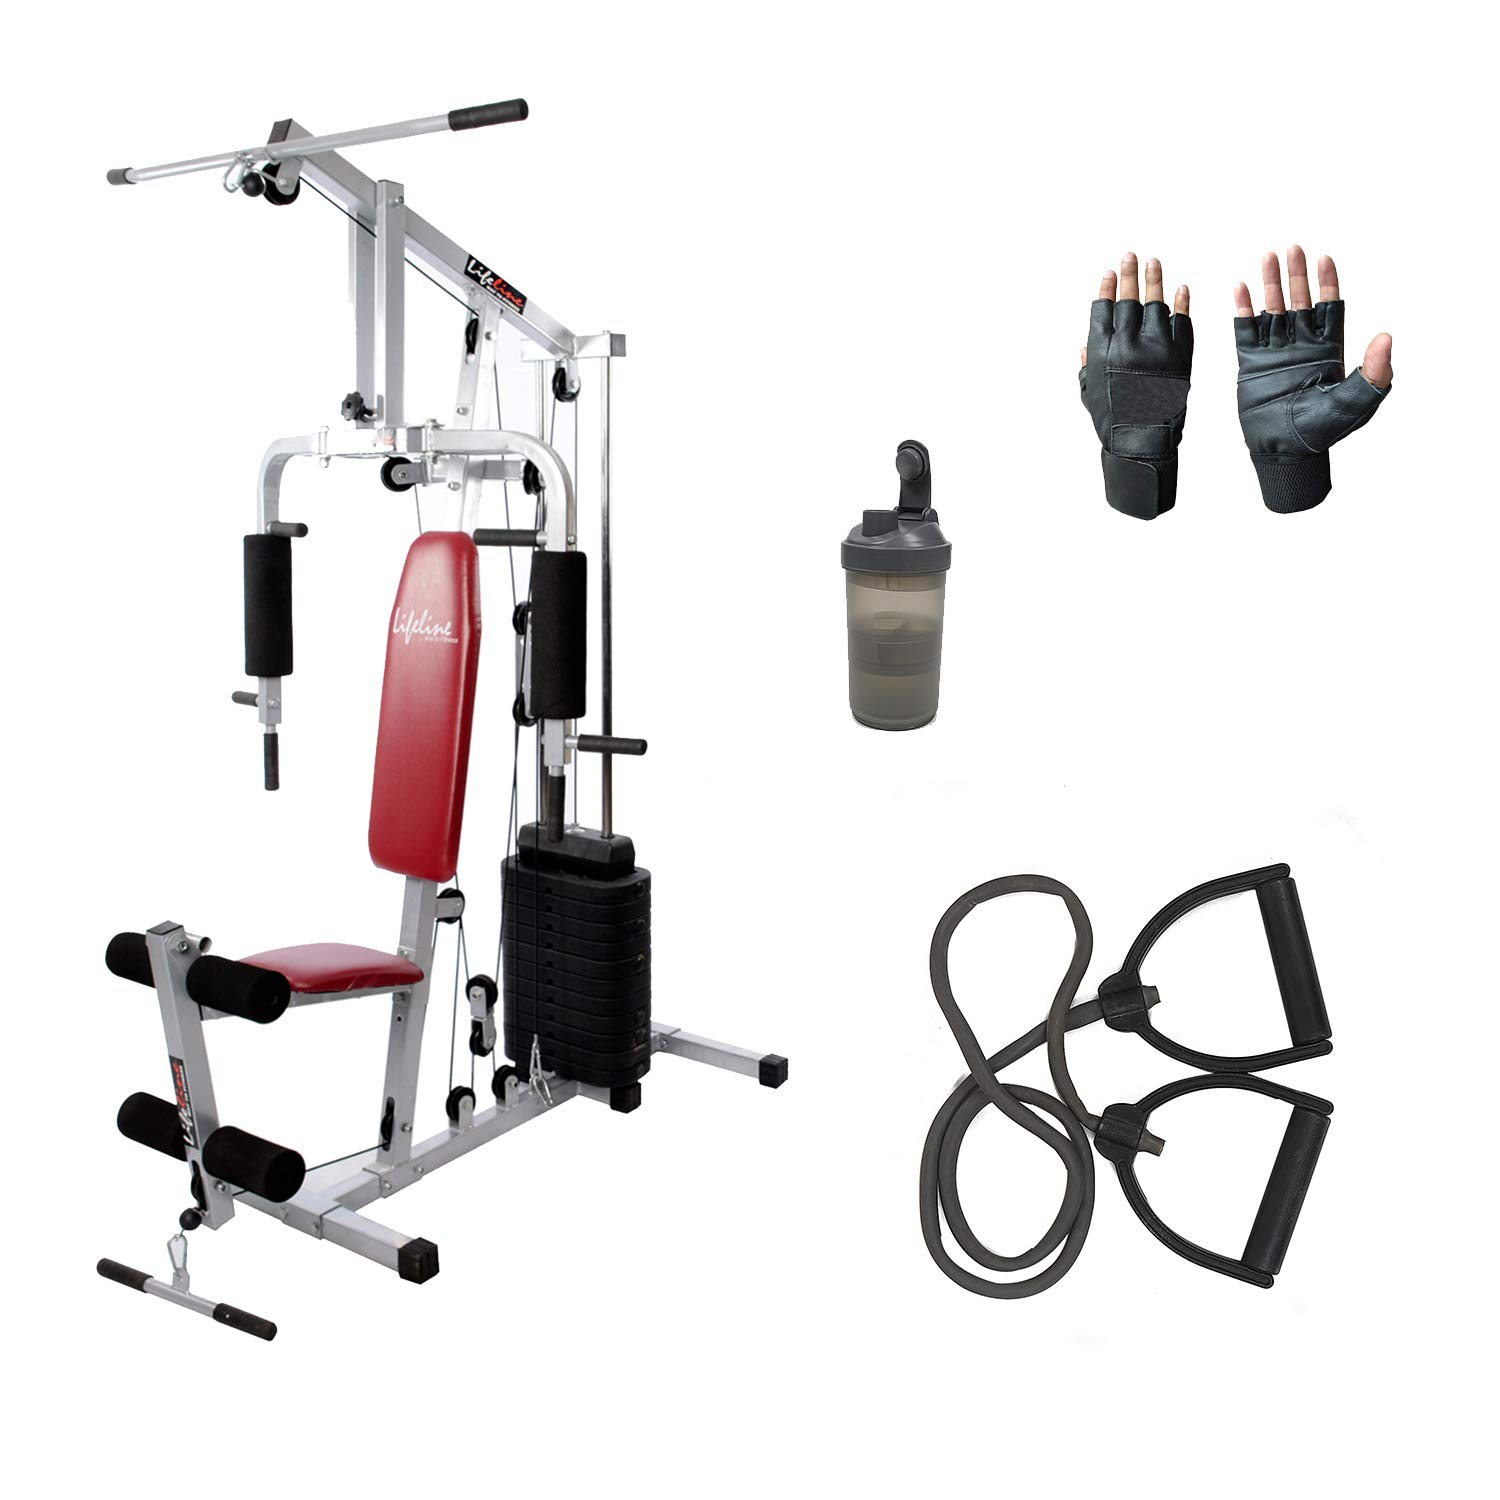 Lifeline home gym equipment all in 1 3 accessories bundles with